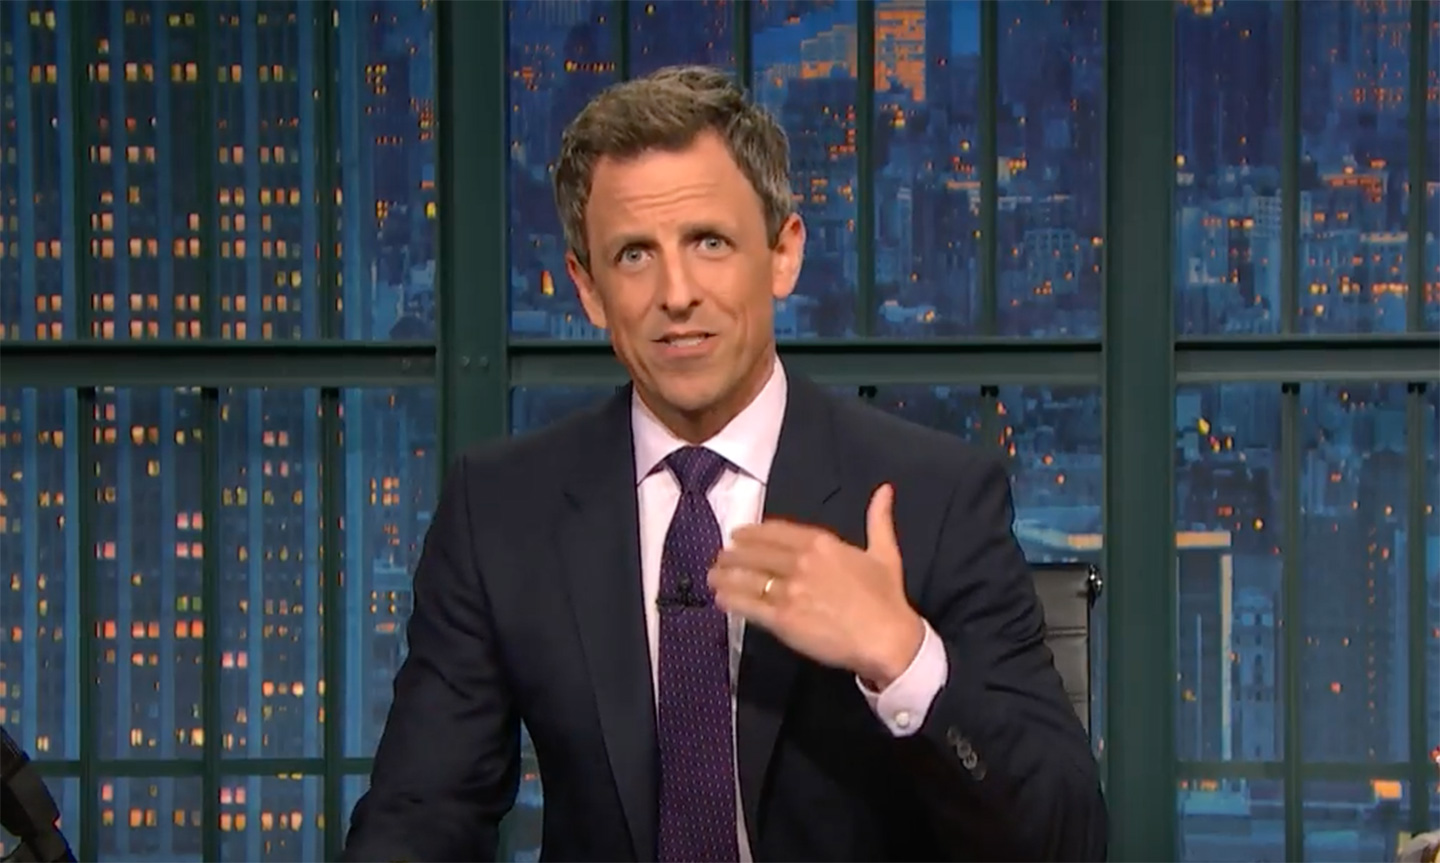 Seth Meyers Slams Democratic Hypocrisy, Spin on Georgia Special Election